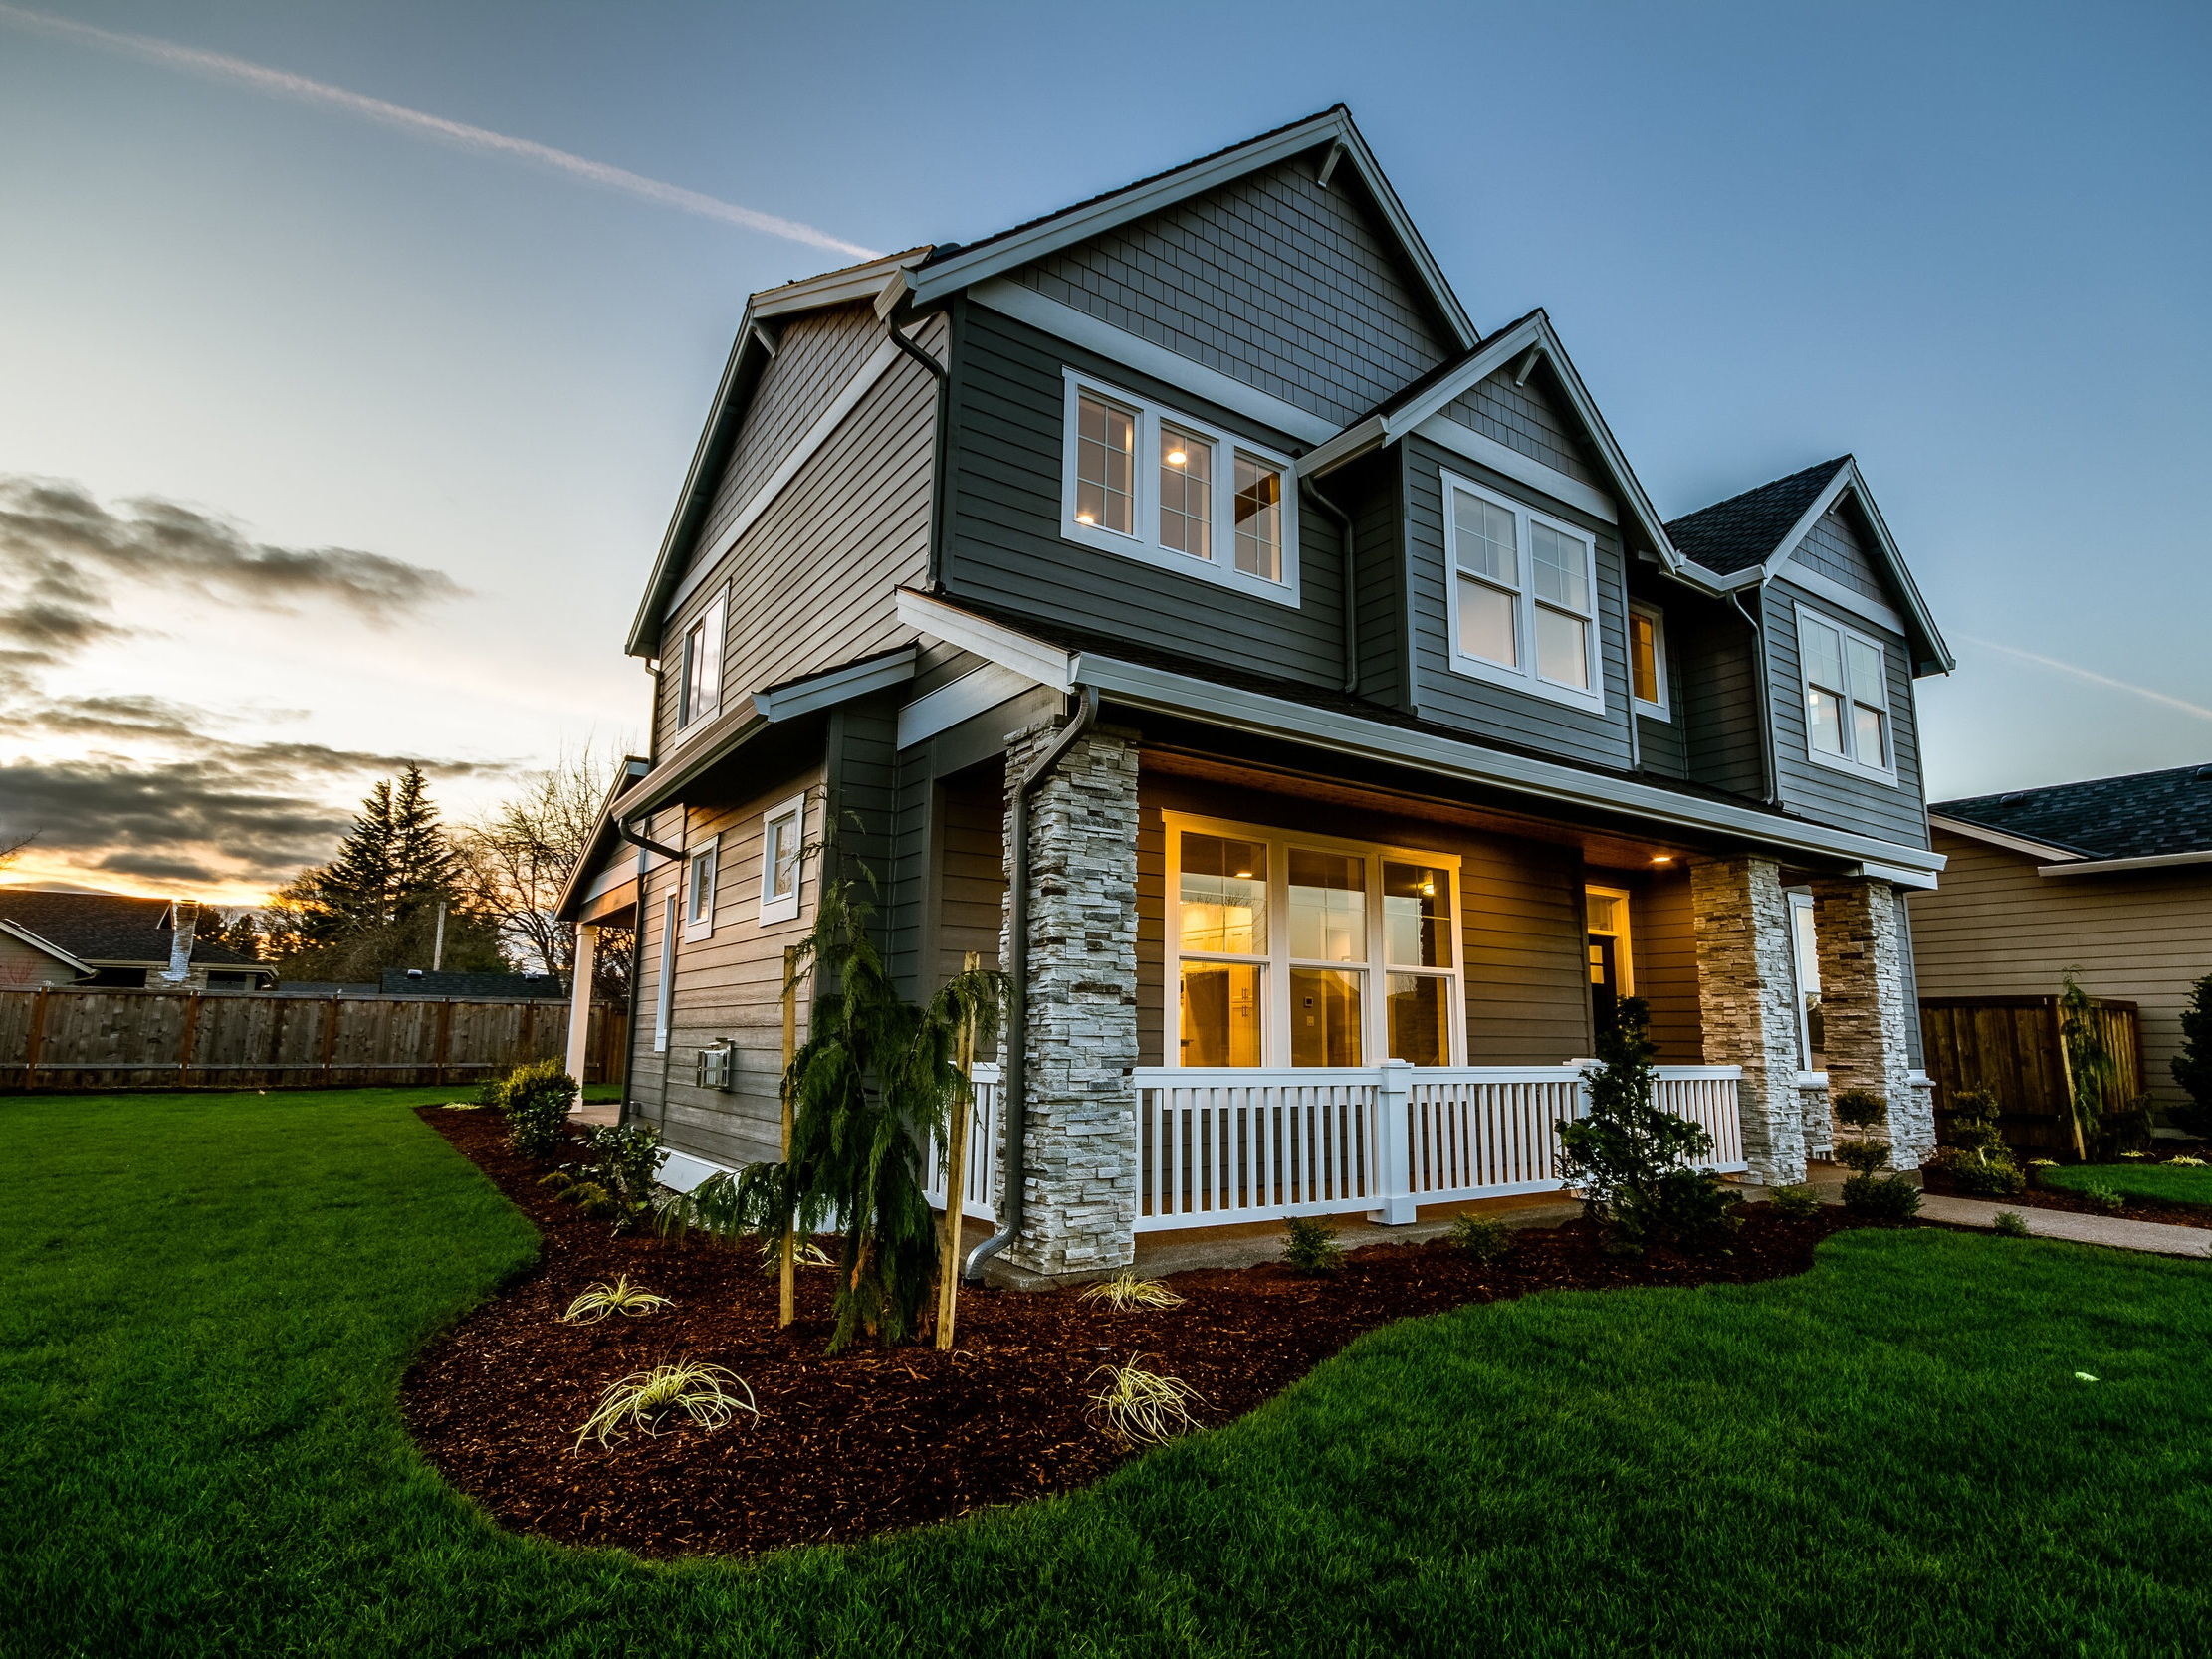 When you're looking to buy a home, Finance Guru is here to help you learn about mortgage rates.